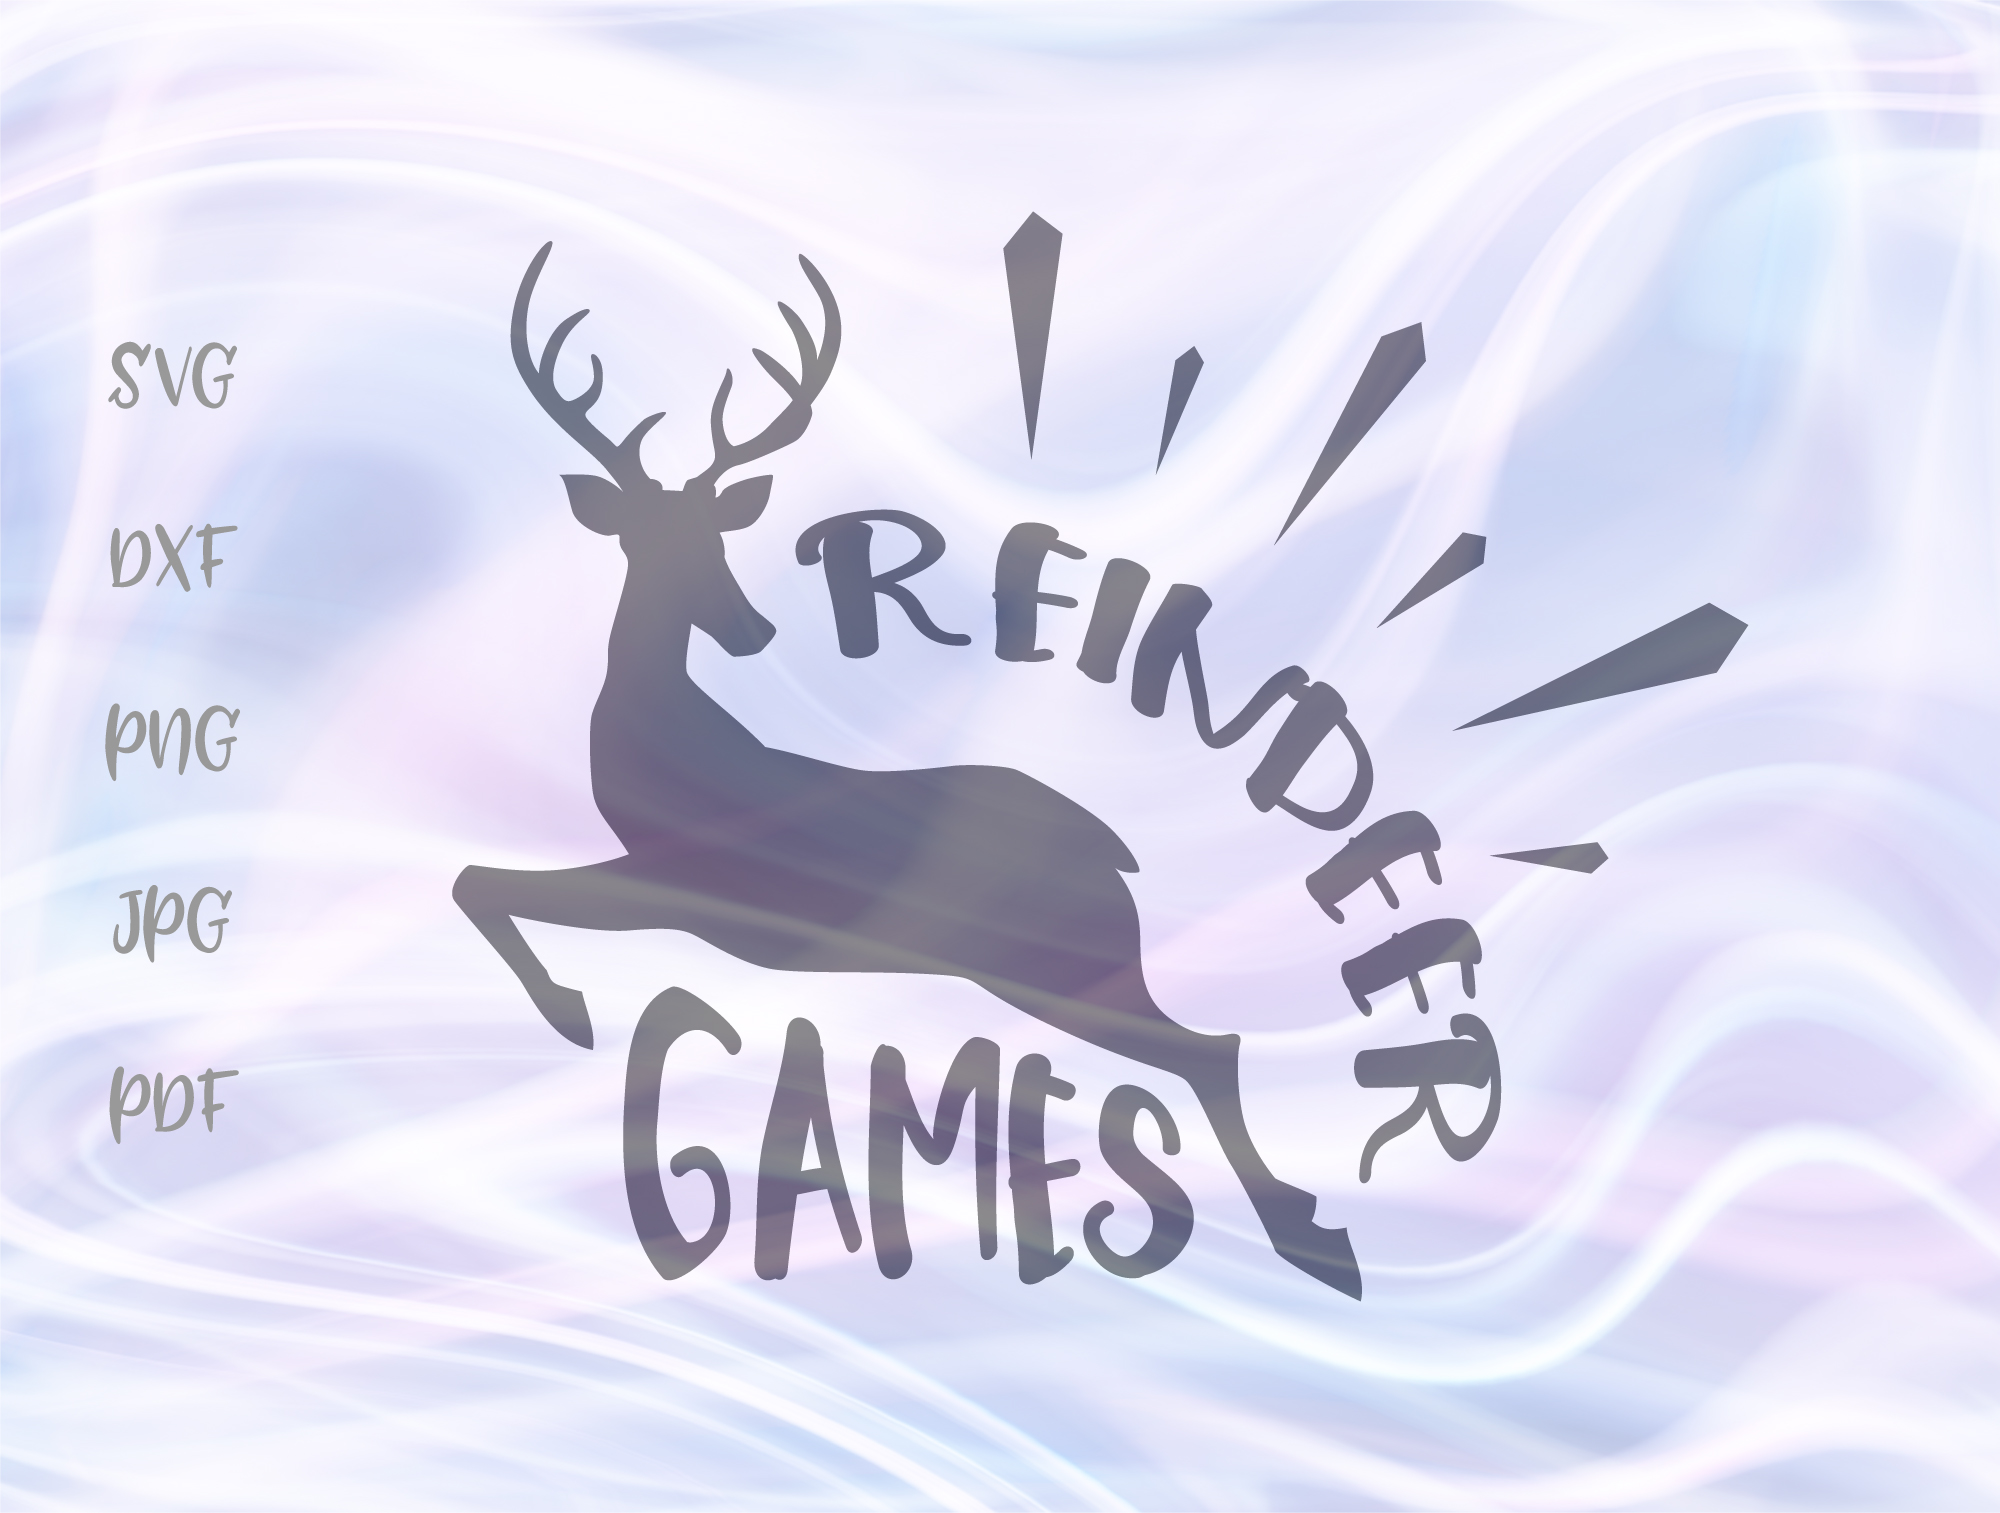 Download Free Reindeer Games Christmas Graphic By Digitals By Hanna Creative for Cricut Explore, Silhouette and other cutting machines.